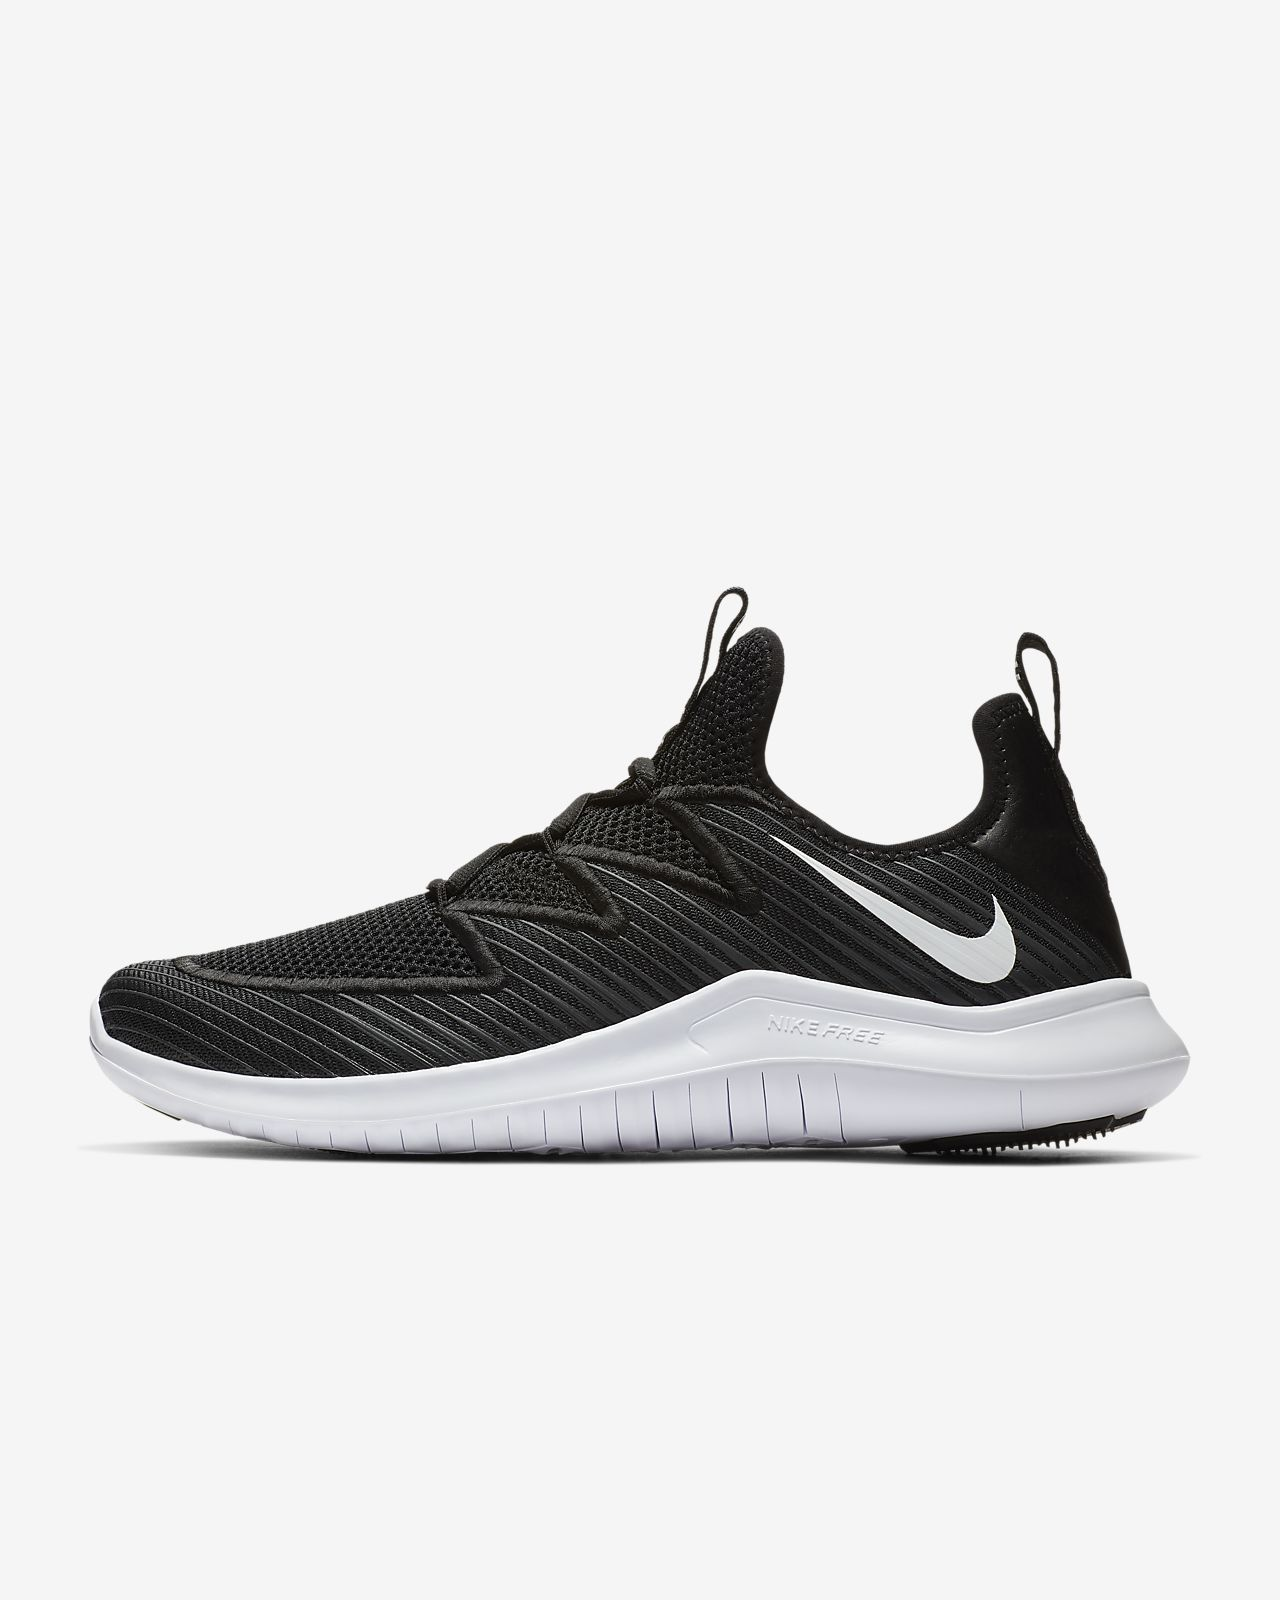 16e7e70bcd41 Nike Free TR 9 Ultra Men s Training Shoe. Nike.com GB